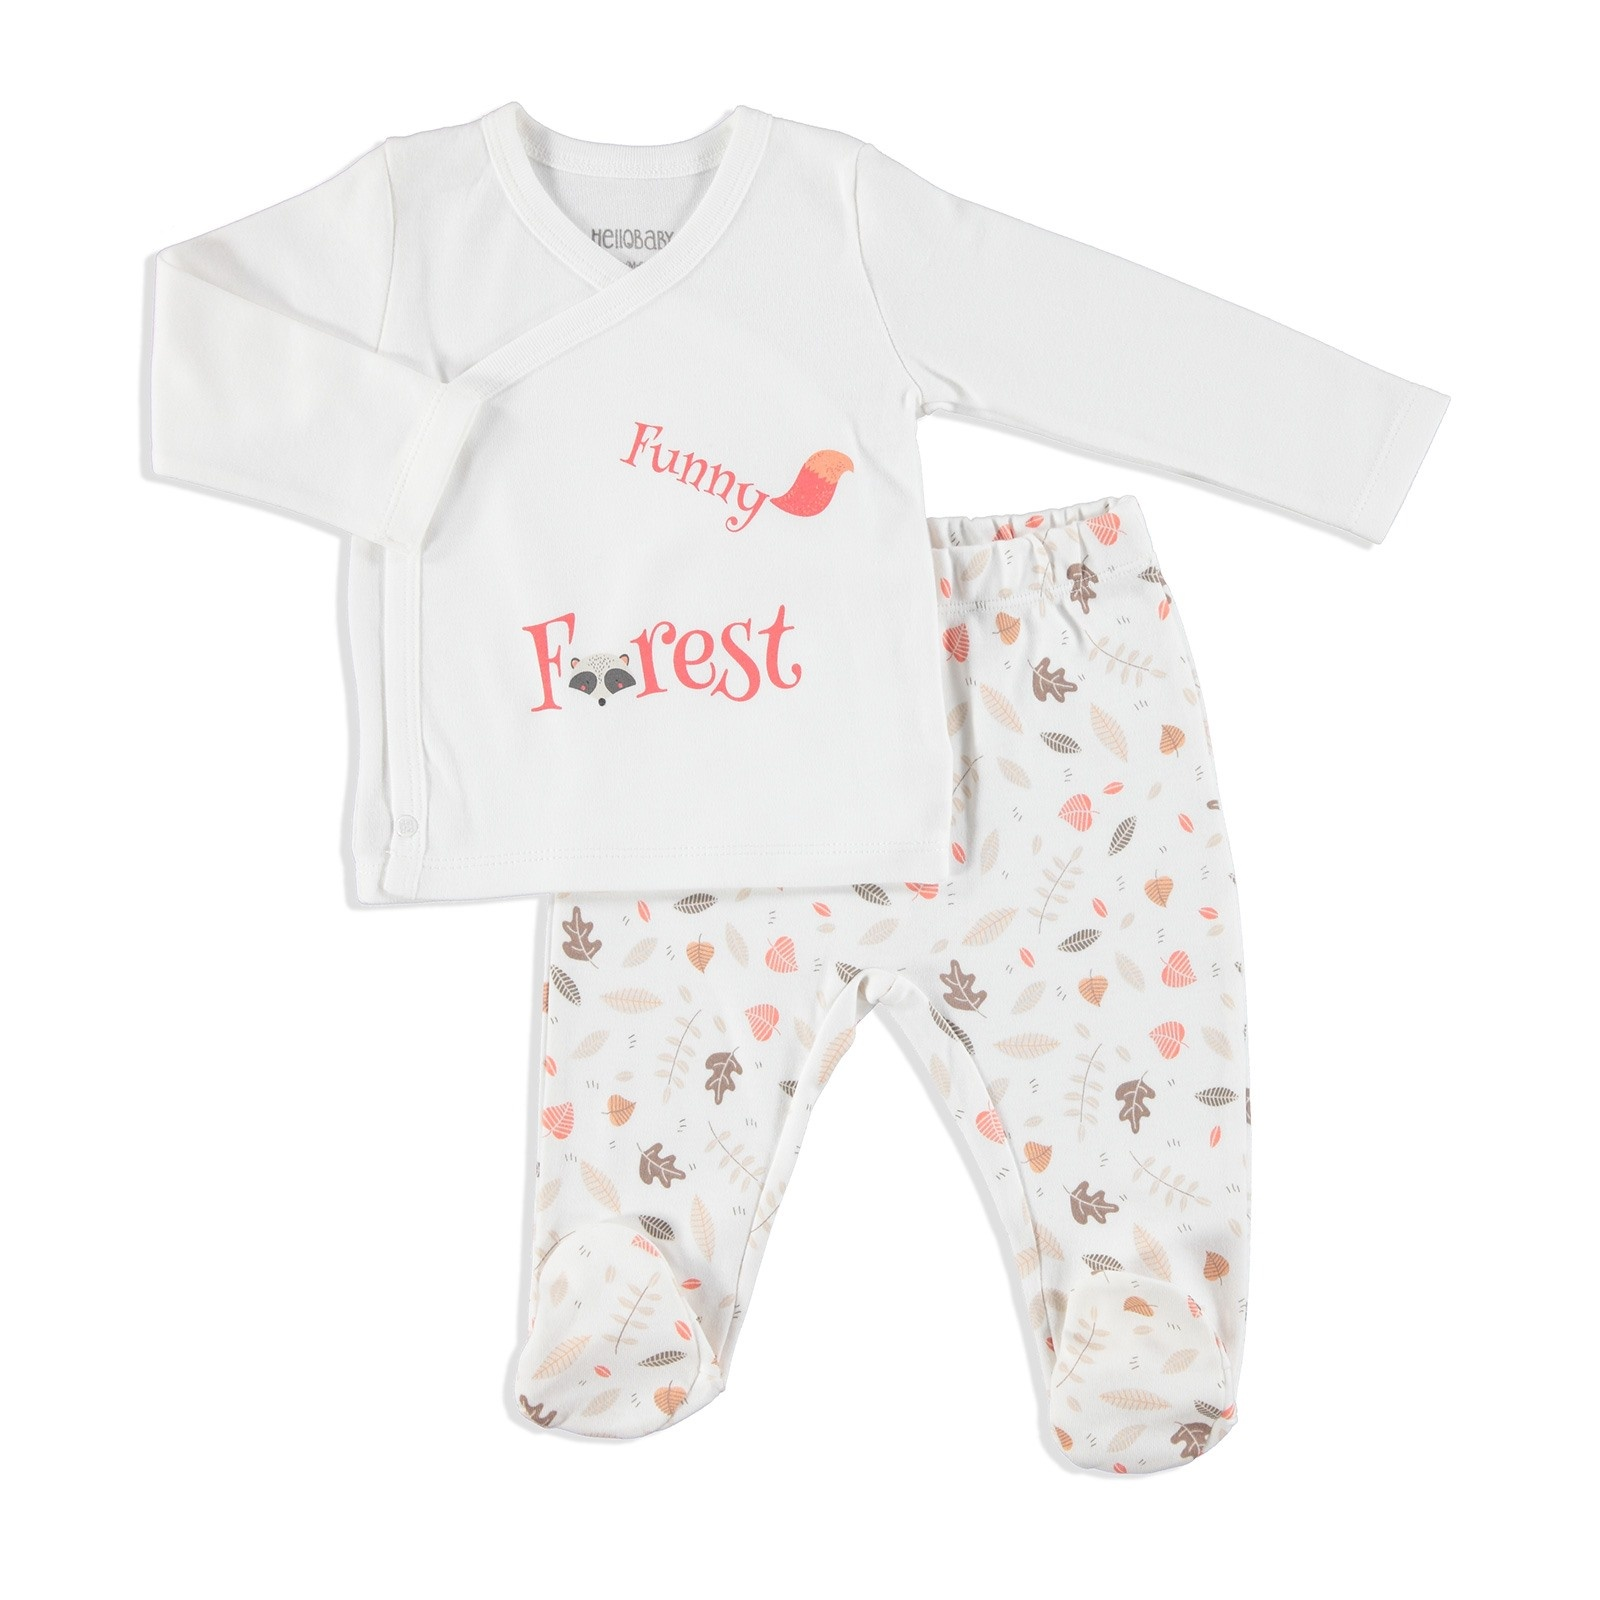 Ebebek HelloBaby Fun Forest Baby Bodysuit Footed Trouser 2 Pcs